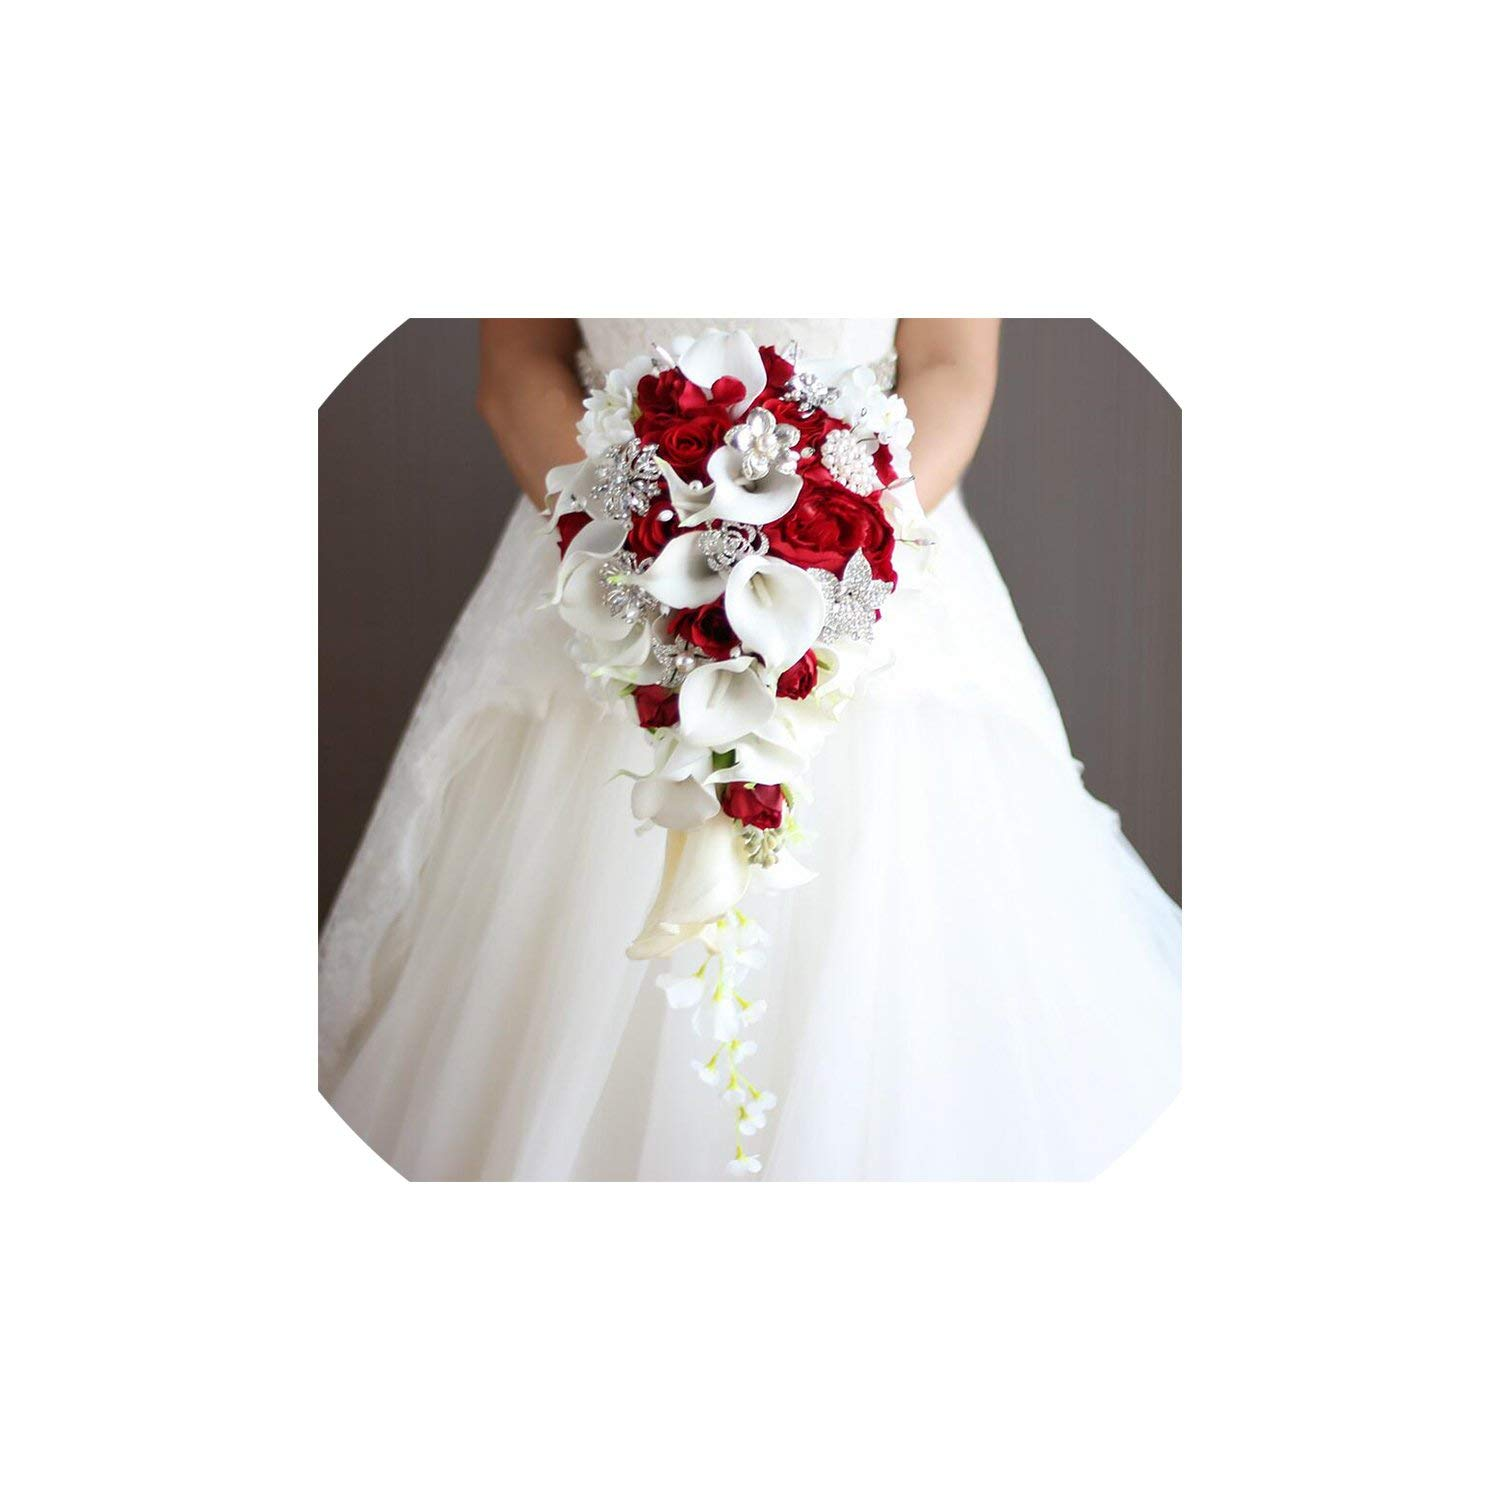 Bridal Bouquet,Vintage Red Rose Bouquet with Crystal Waterfall Bridal Pearl White Wedding Bouquet Artificial Flowers Bride Brooch,Red by Kayer-Hebe bridal bouquets